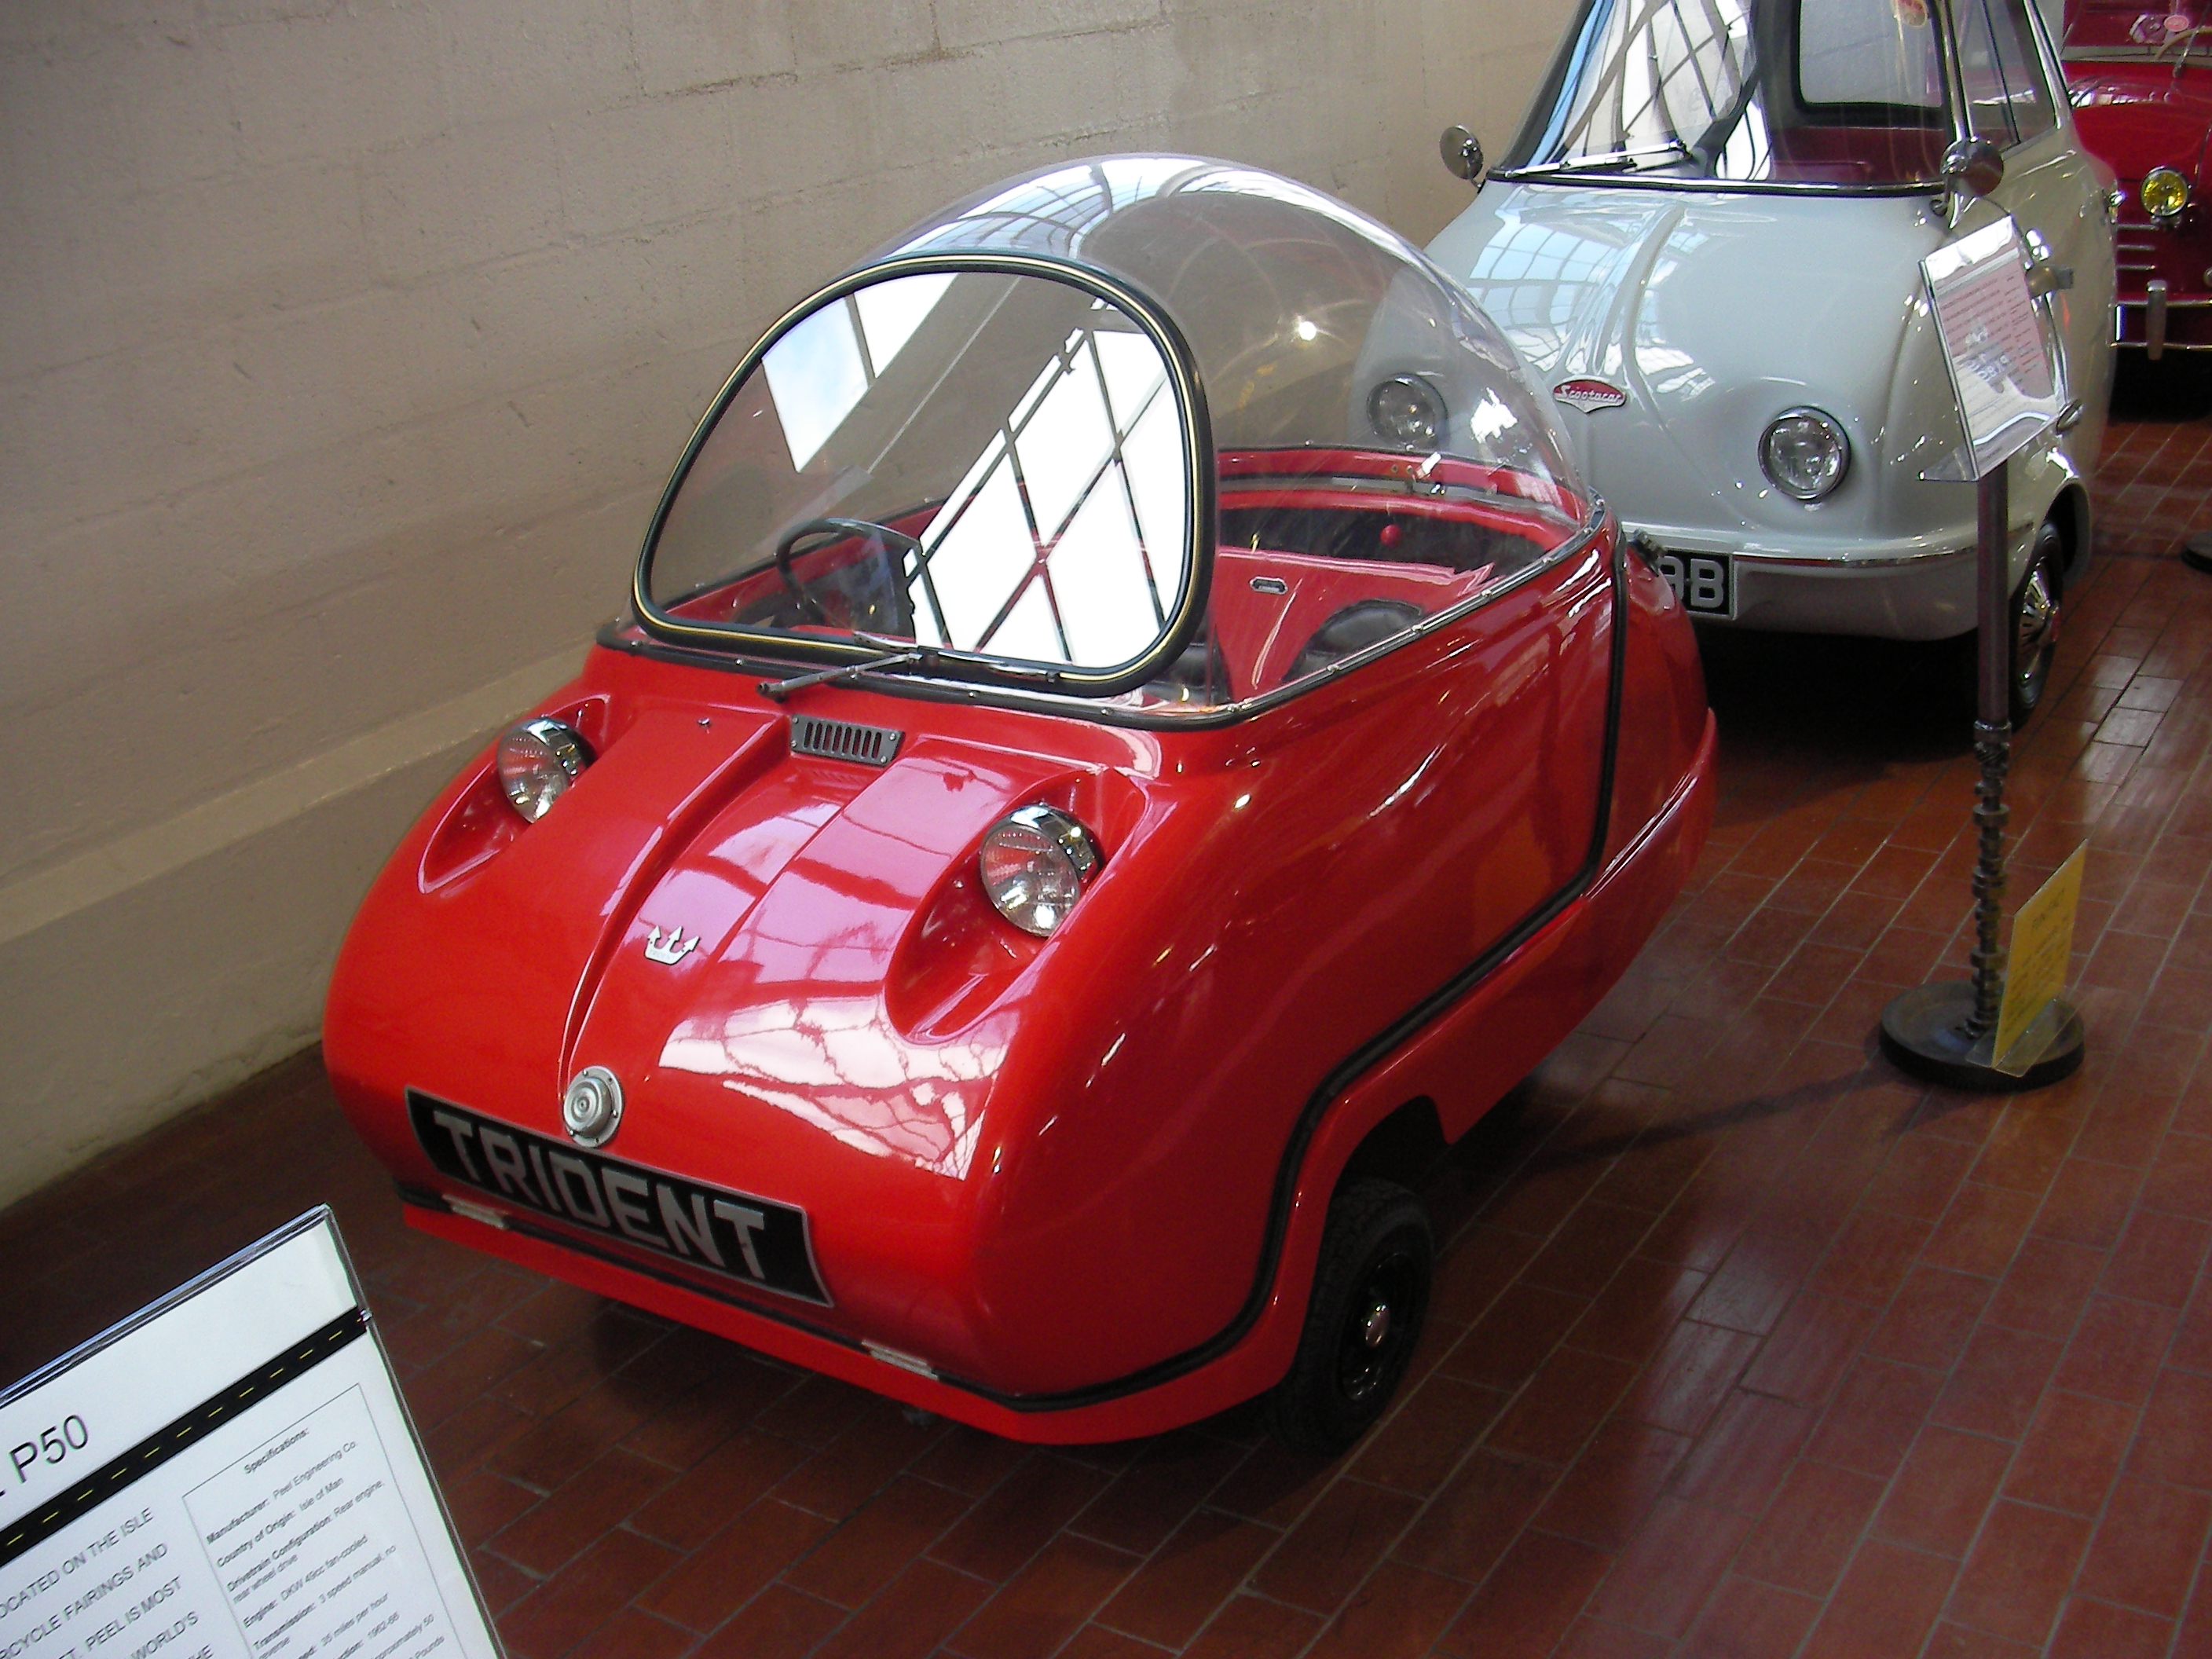 Red car with perspex roof